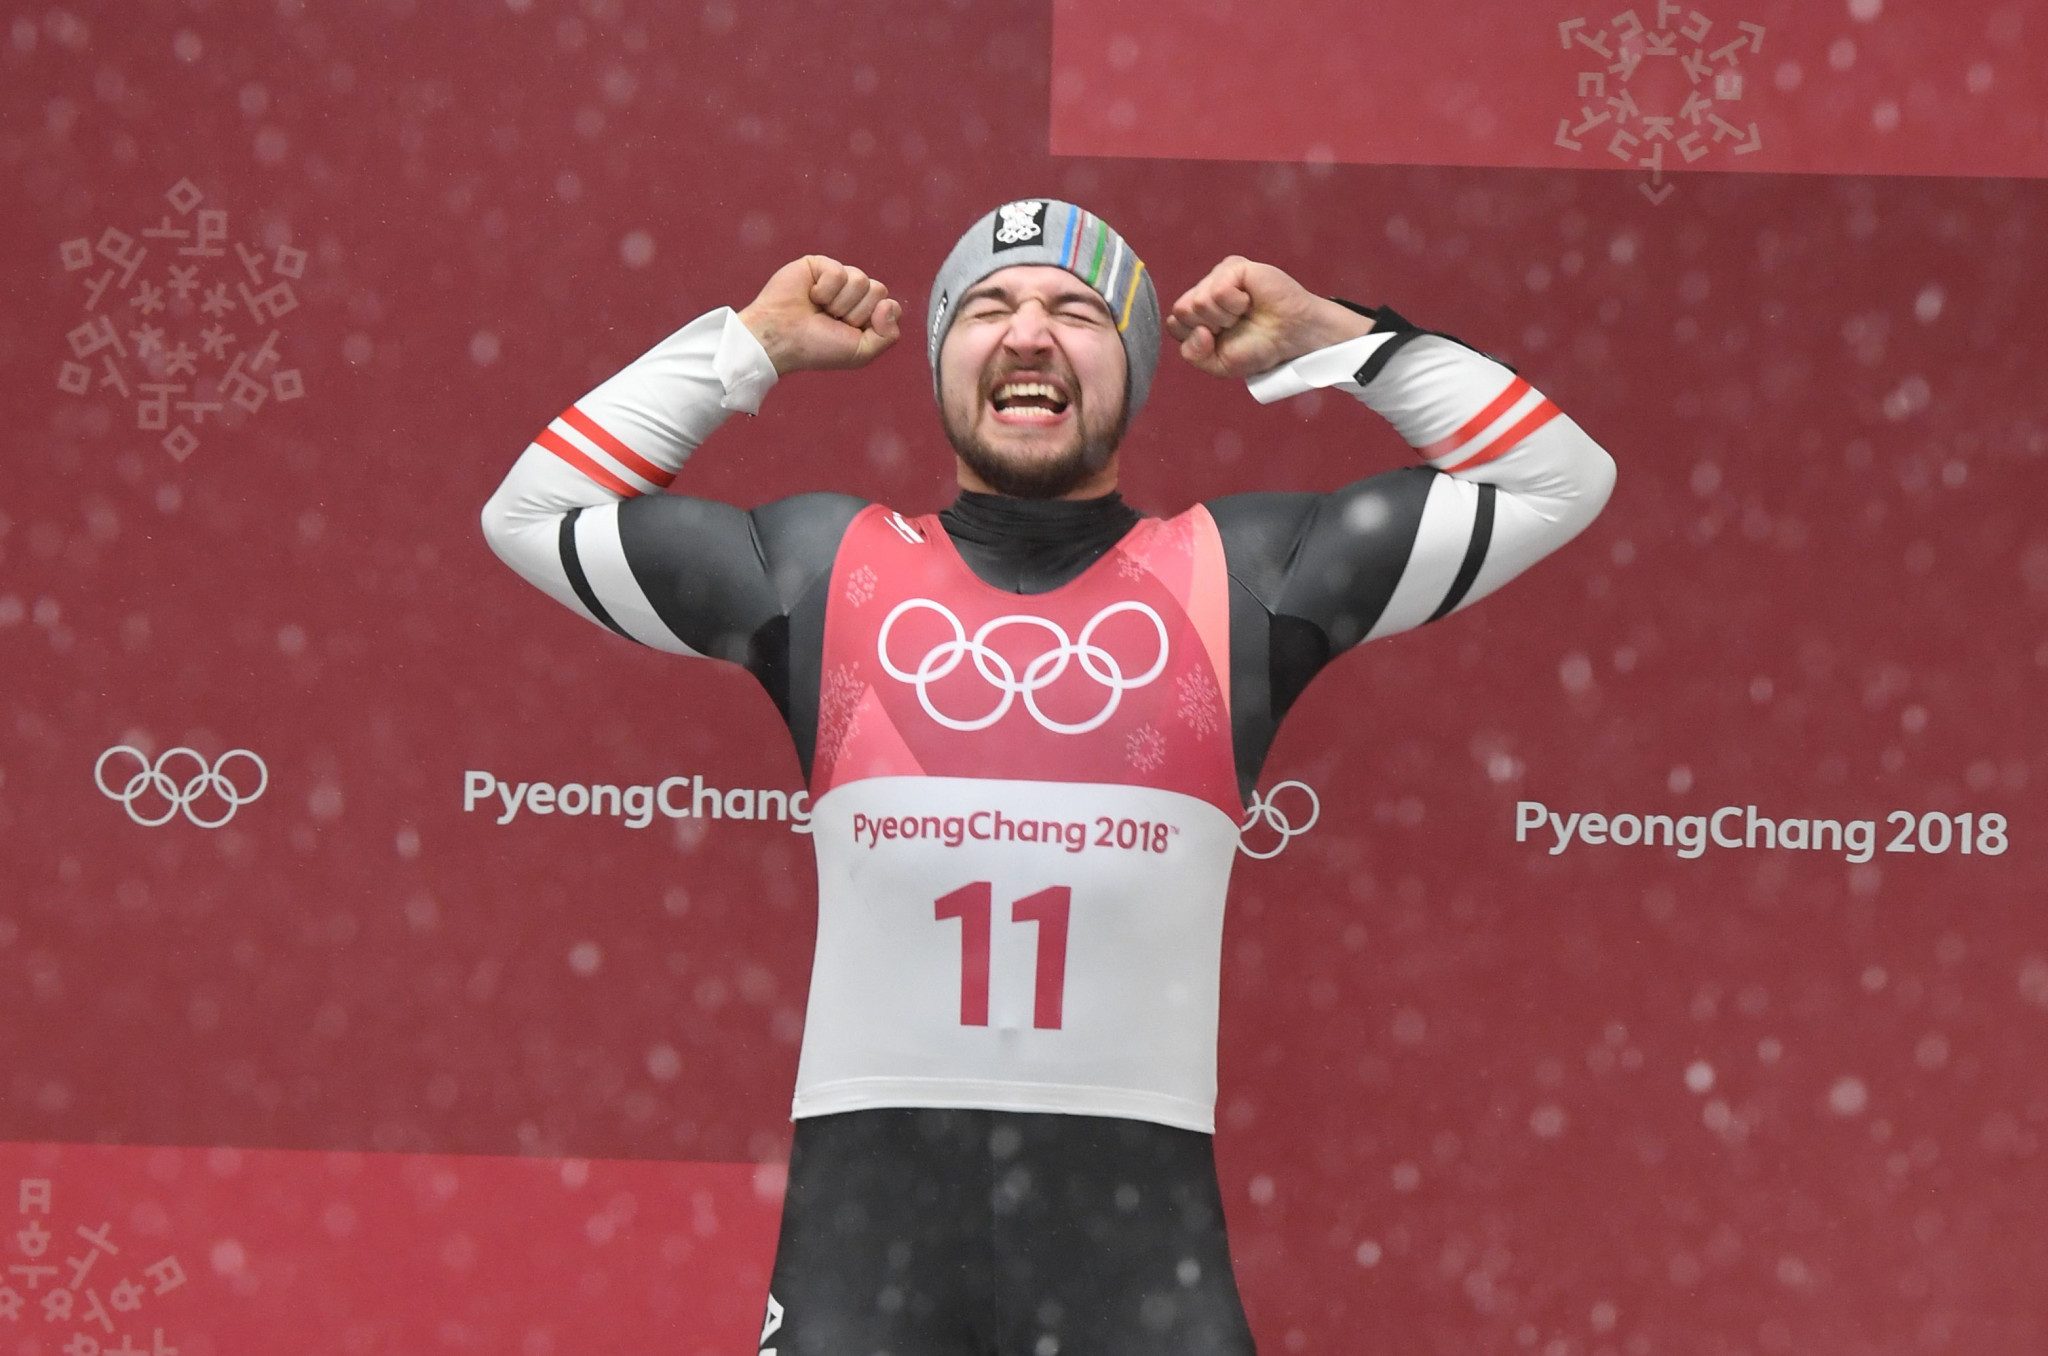 David Gleirscher celebrated his shock luge gold medal at the 2018 Pyeongchang Winter Olympic Games ©Getty Images